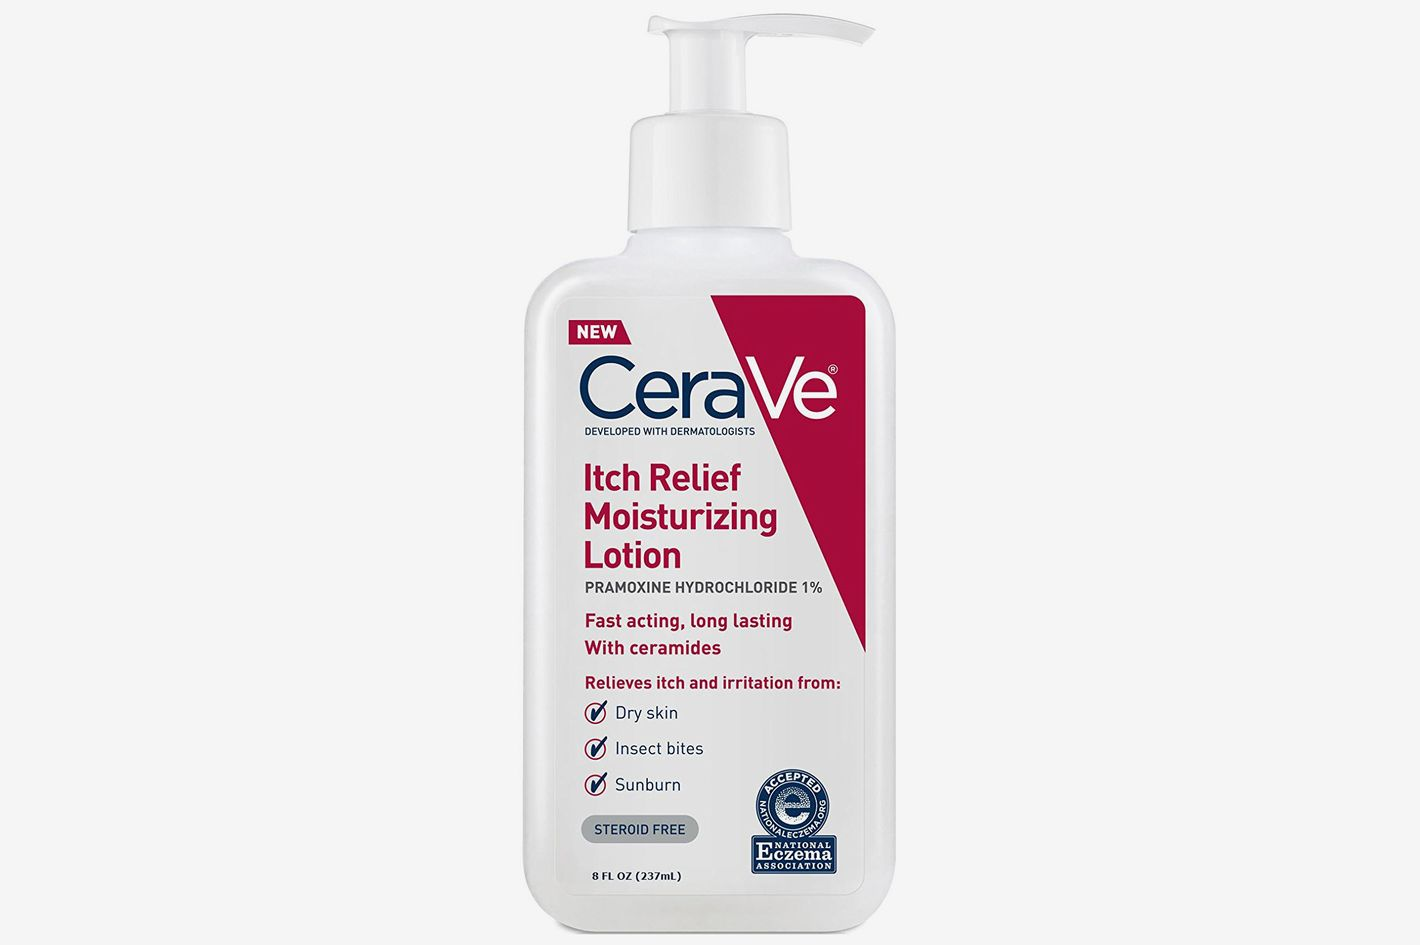 CeraVe Itch Relief Moisturizing Lotion 8 oz With Pramoxine Hydrochloride and Ceramides